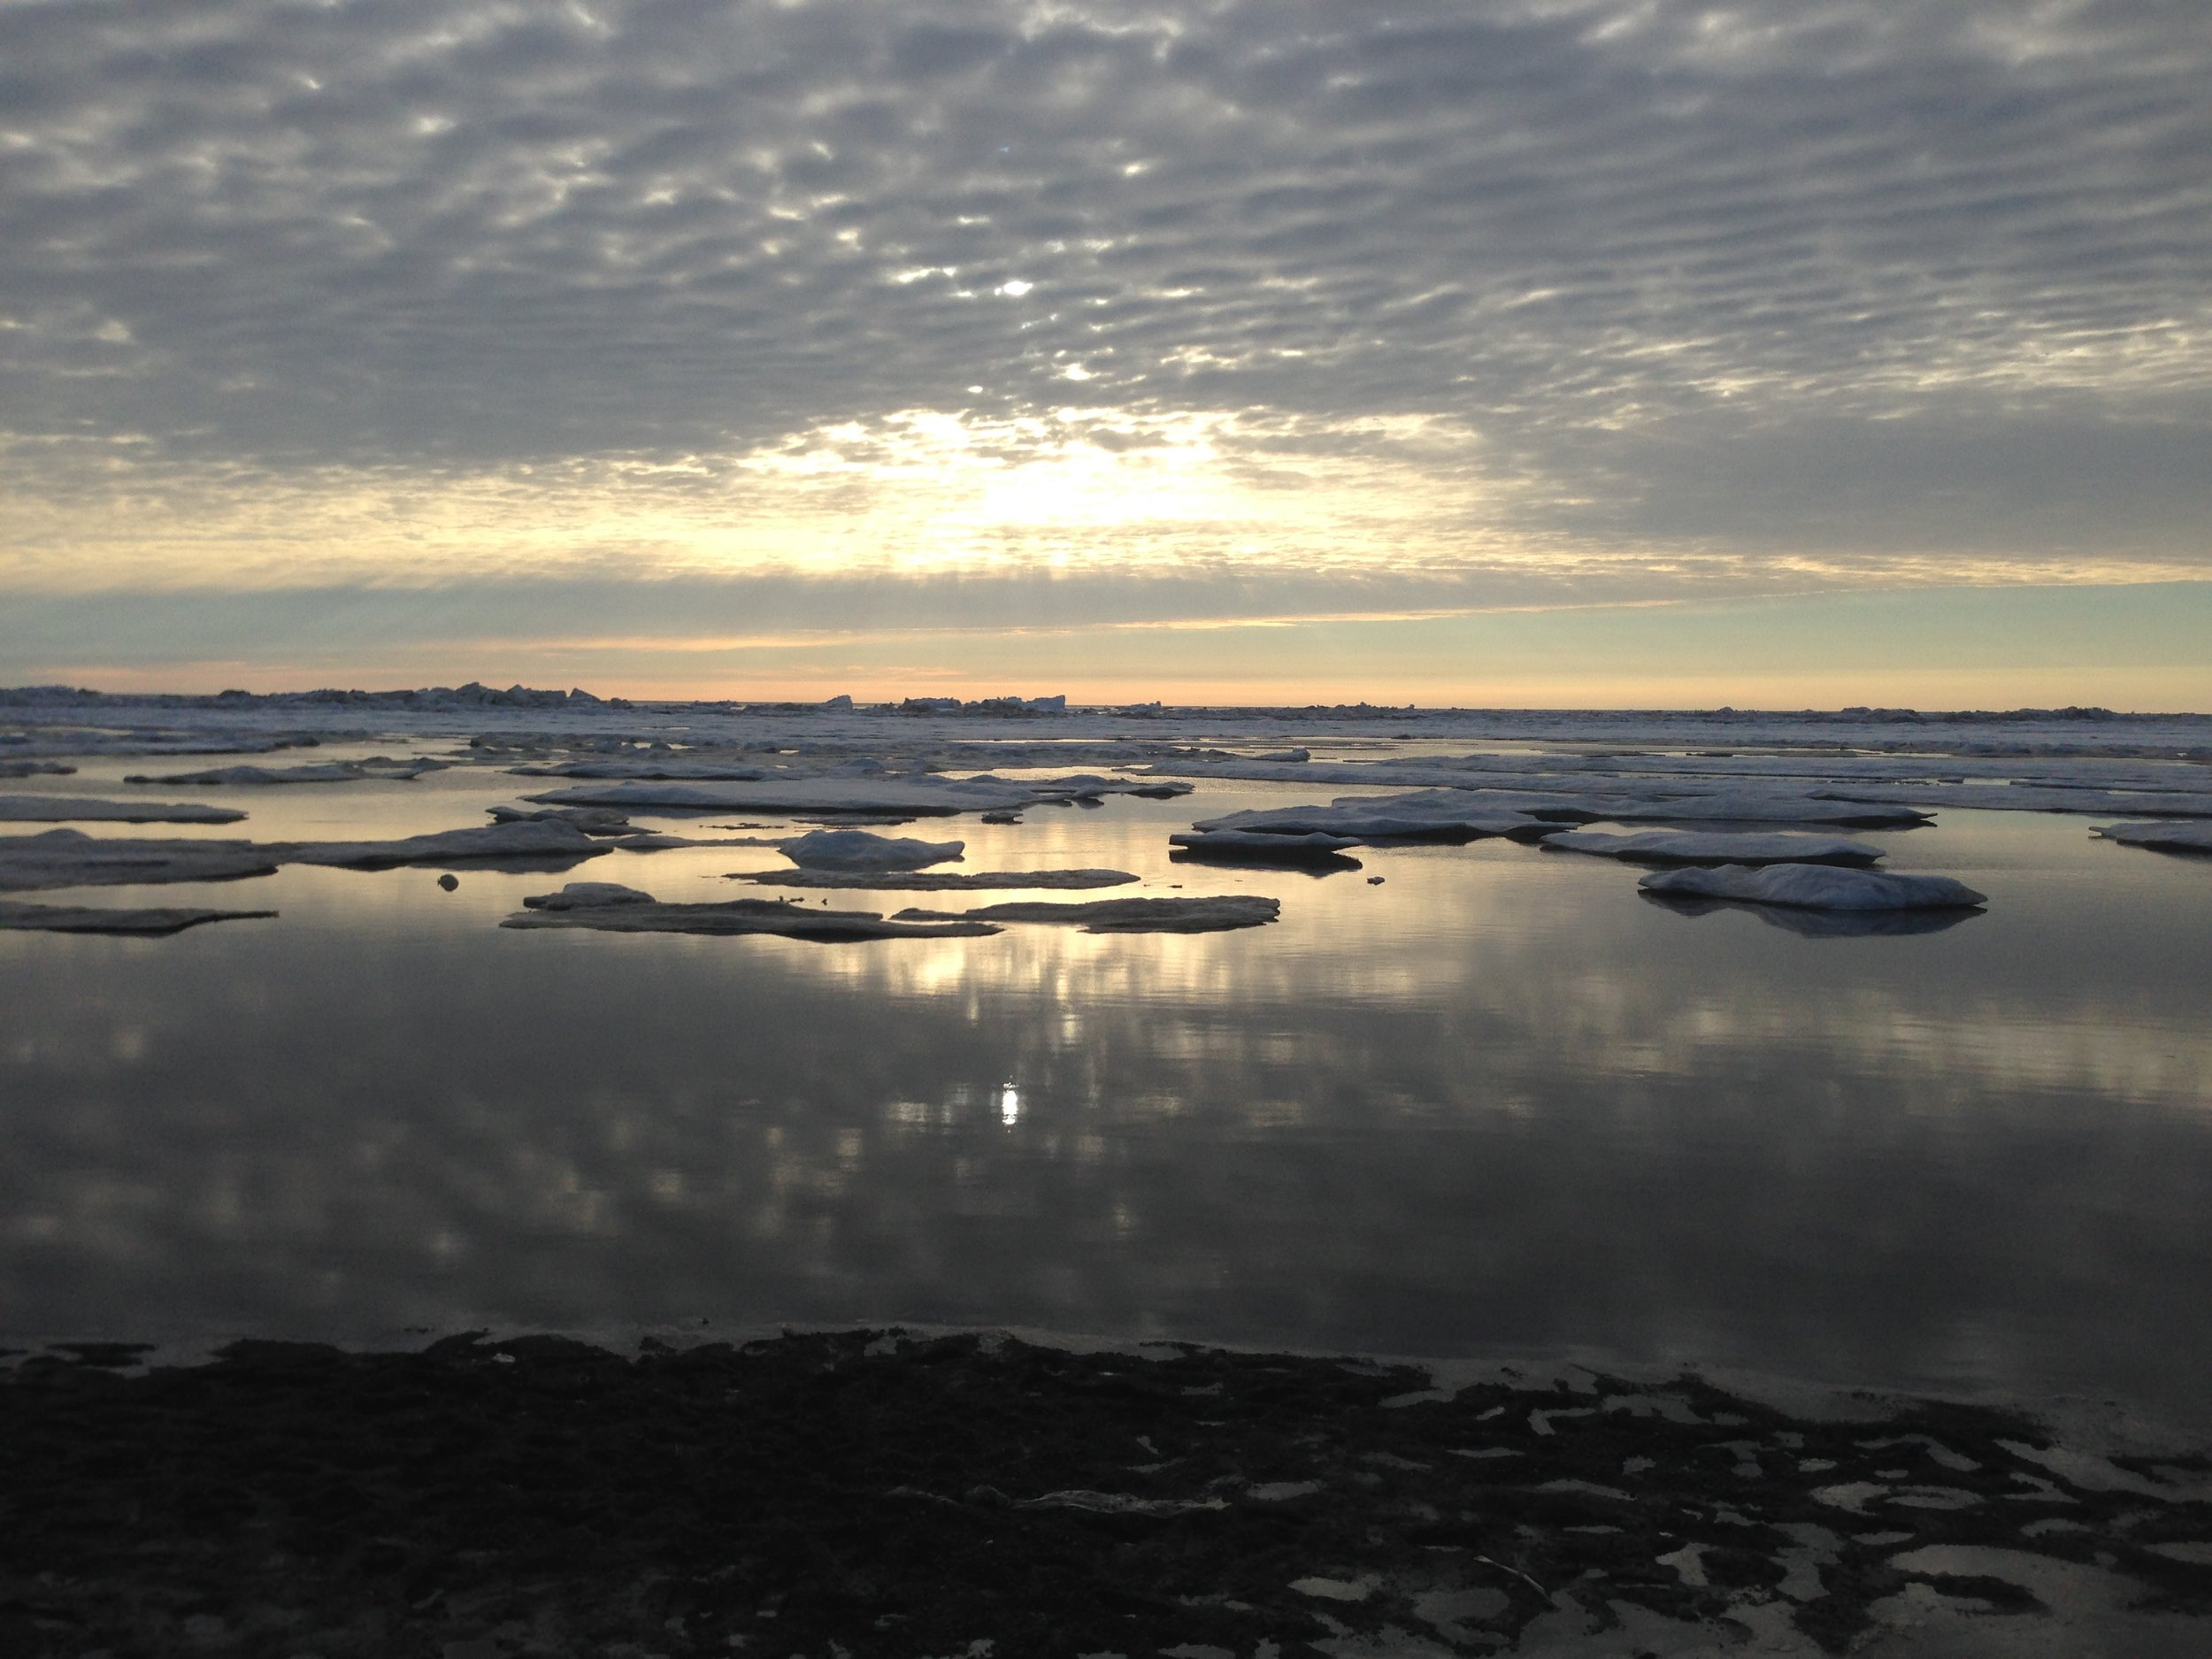 Barrow Alaska is the stage for a project where scientists are teaming with indigenous communities to understand and document how they are navigating environmental, political and economic changes in the 21st century. Photo: Sarah Huang